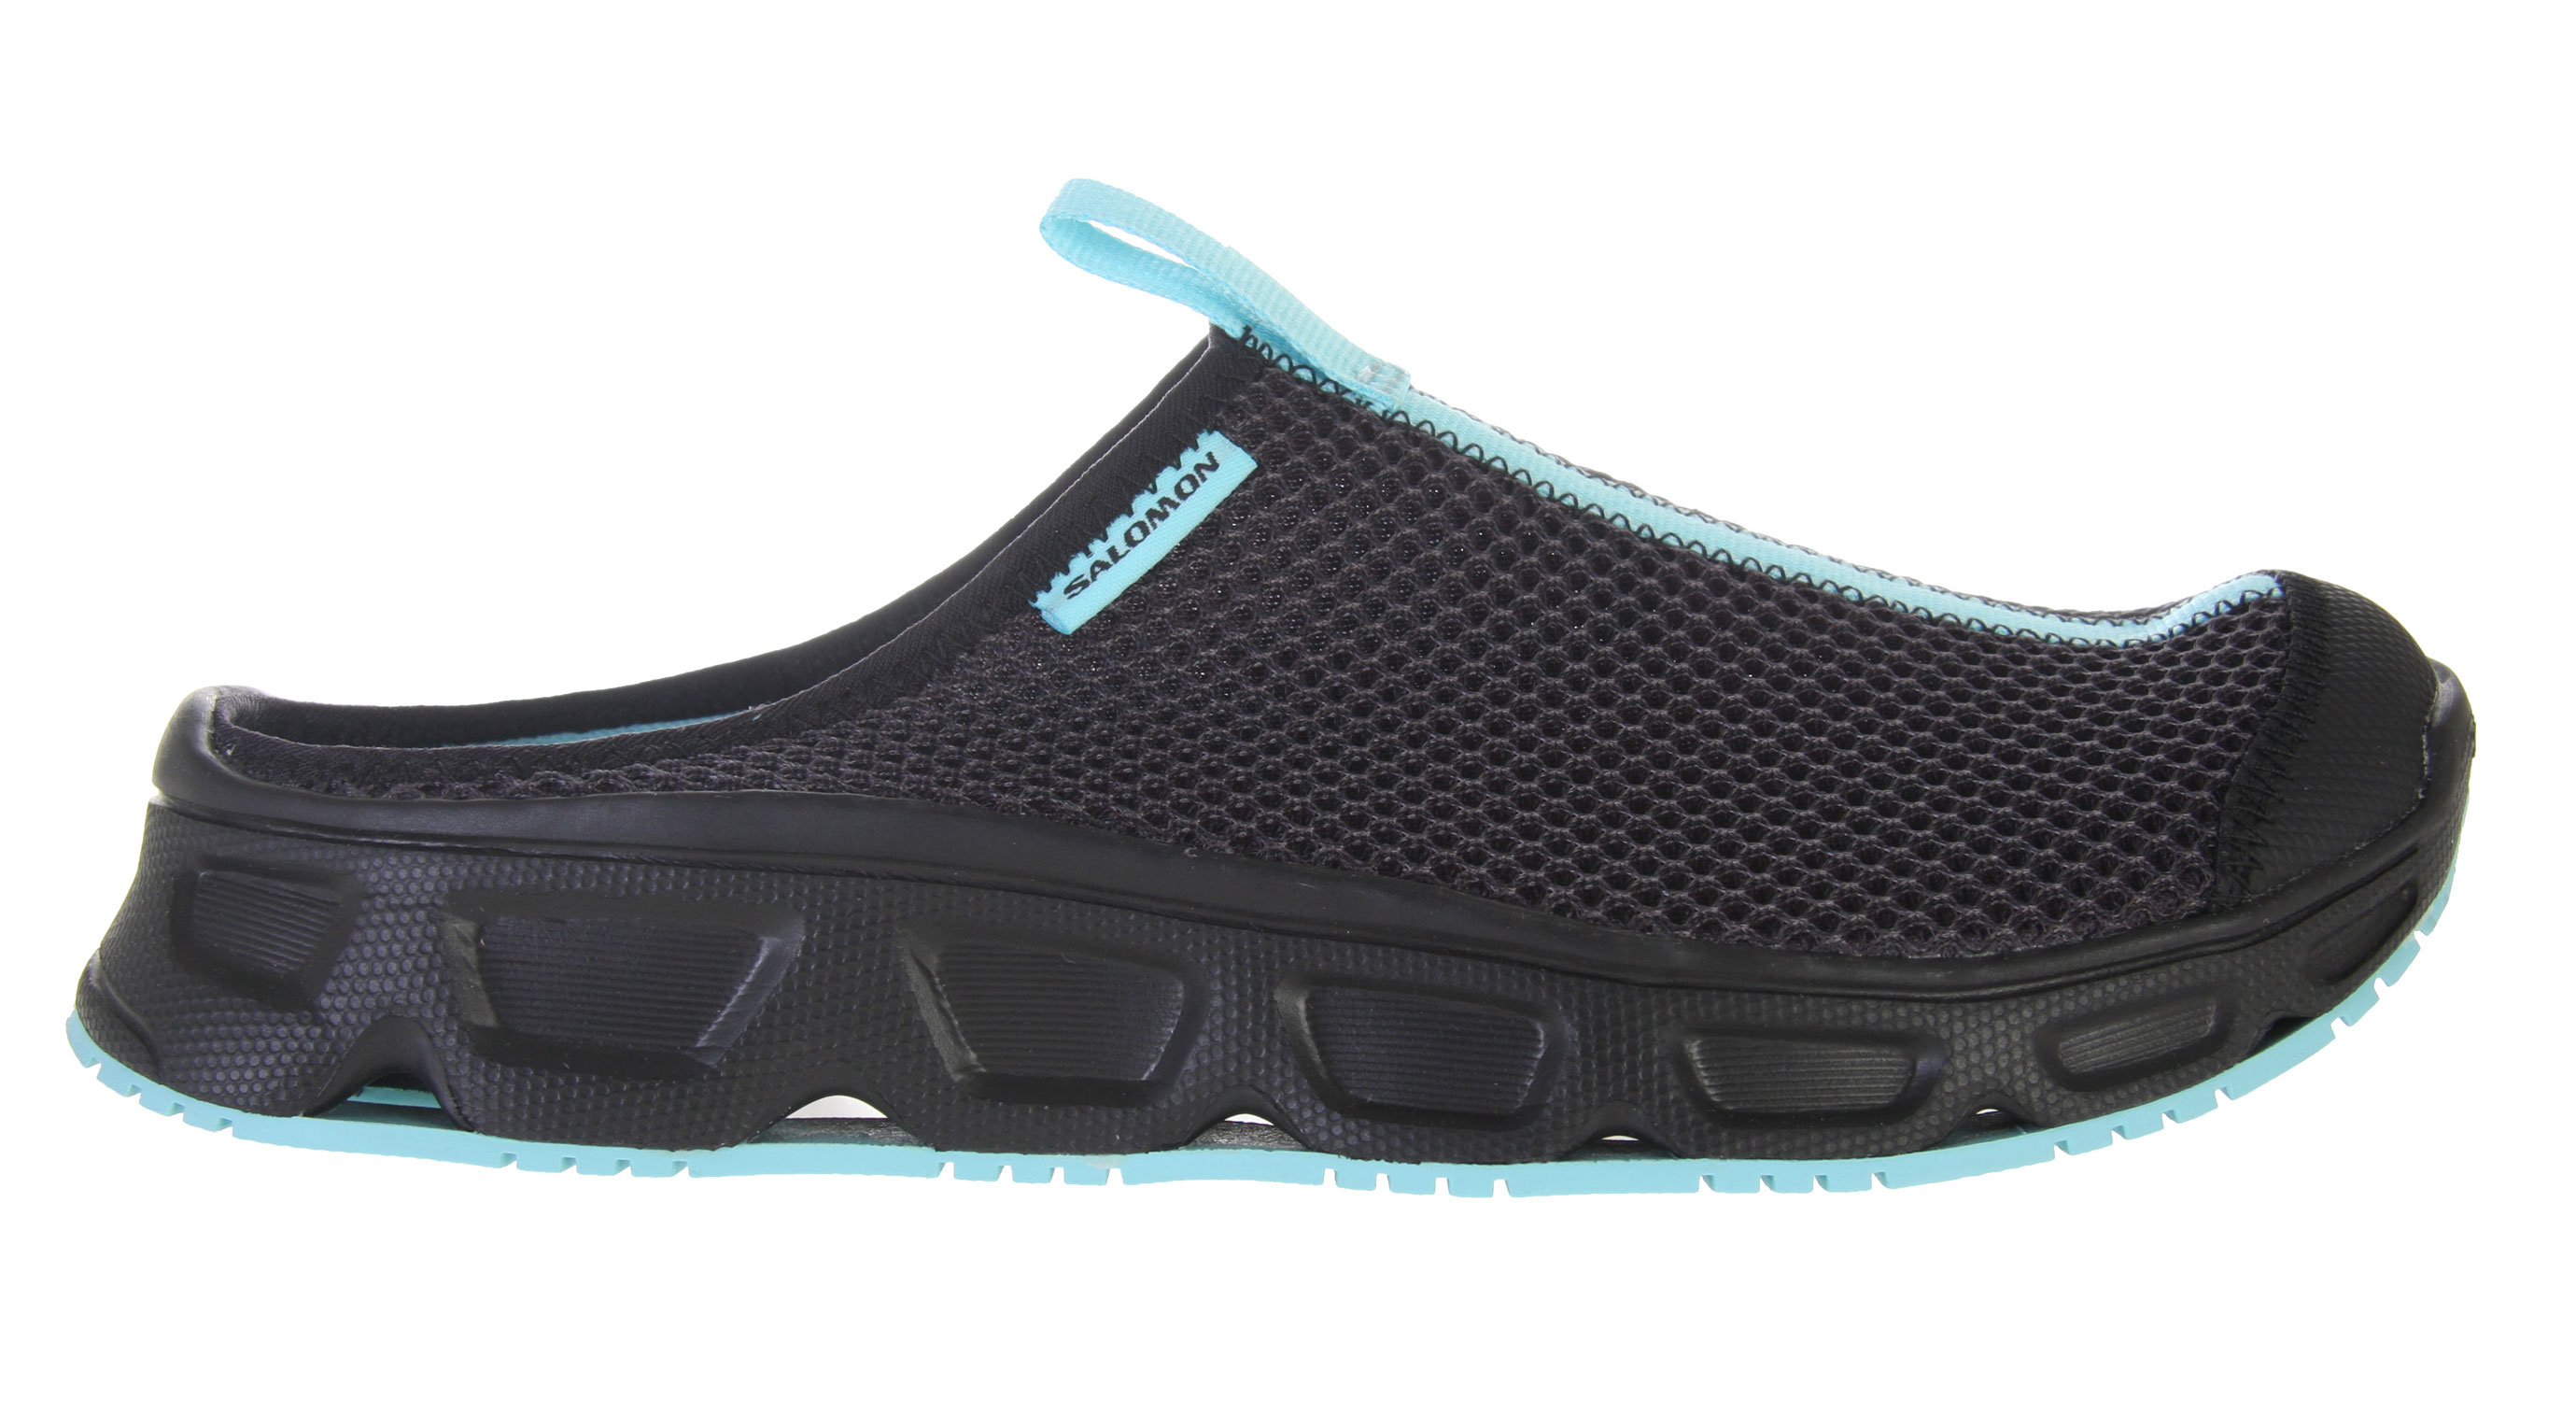 Camp and Hike Super comfortable, breathable, cushioned slide for after sports or just hanging around. - $42.95